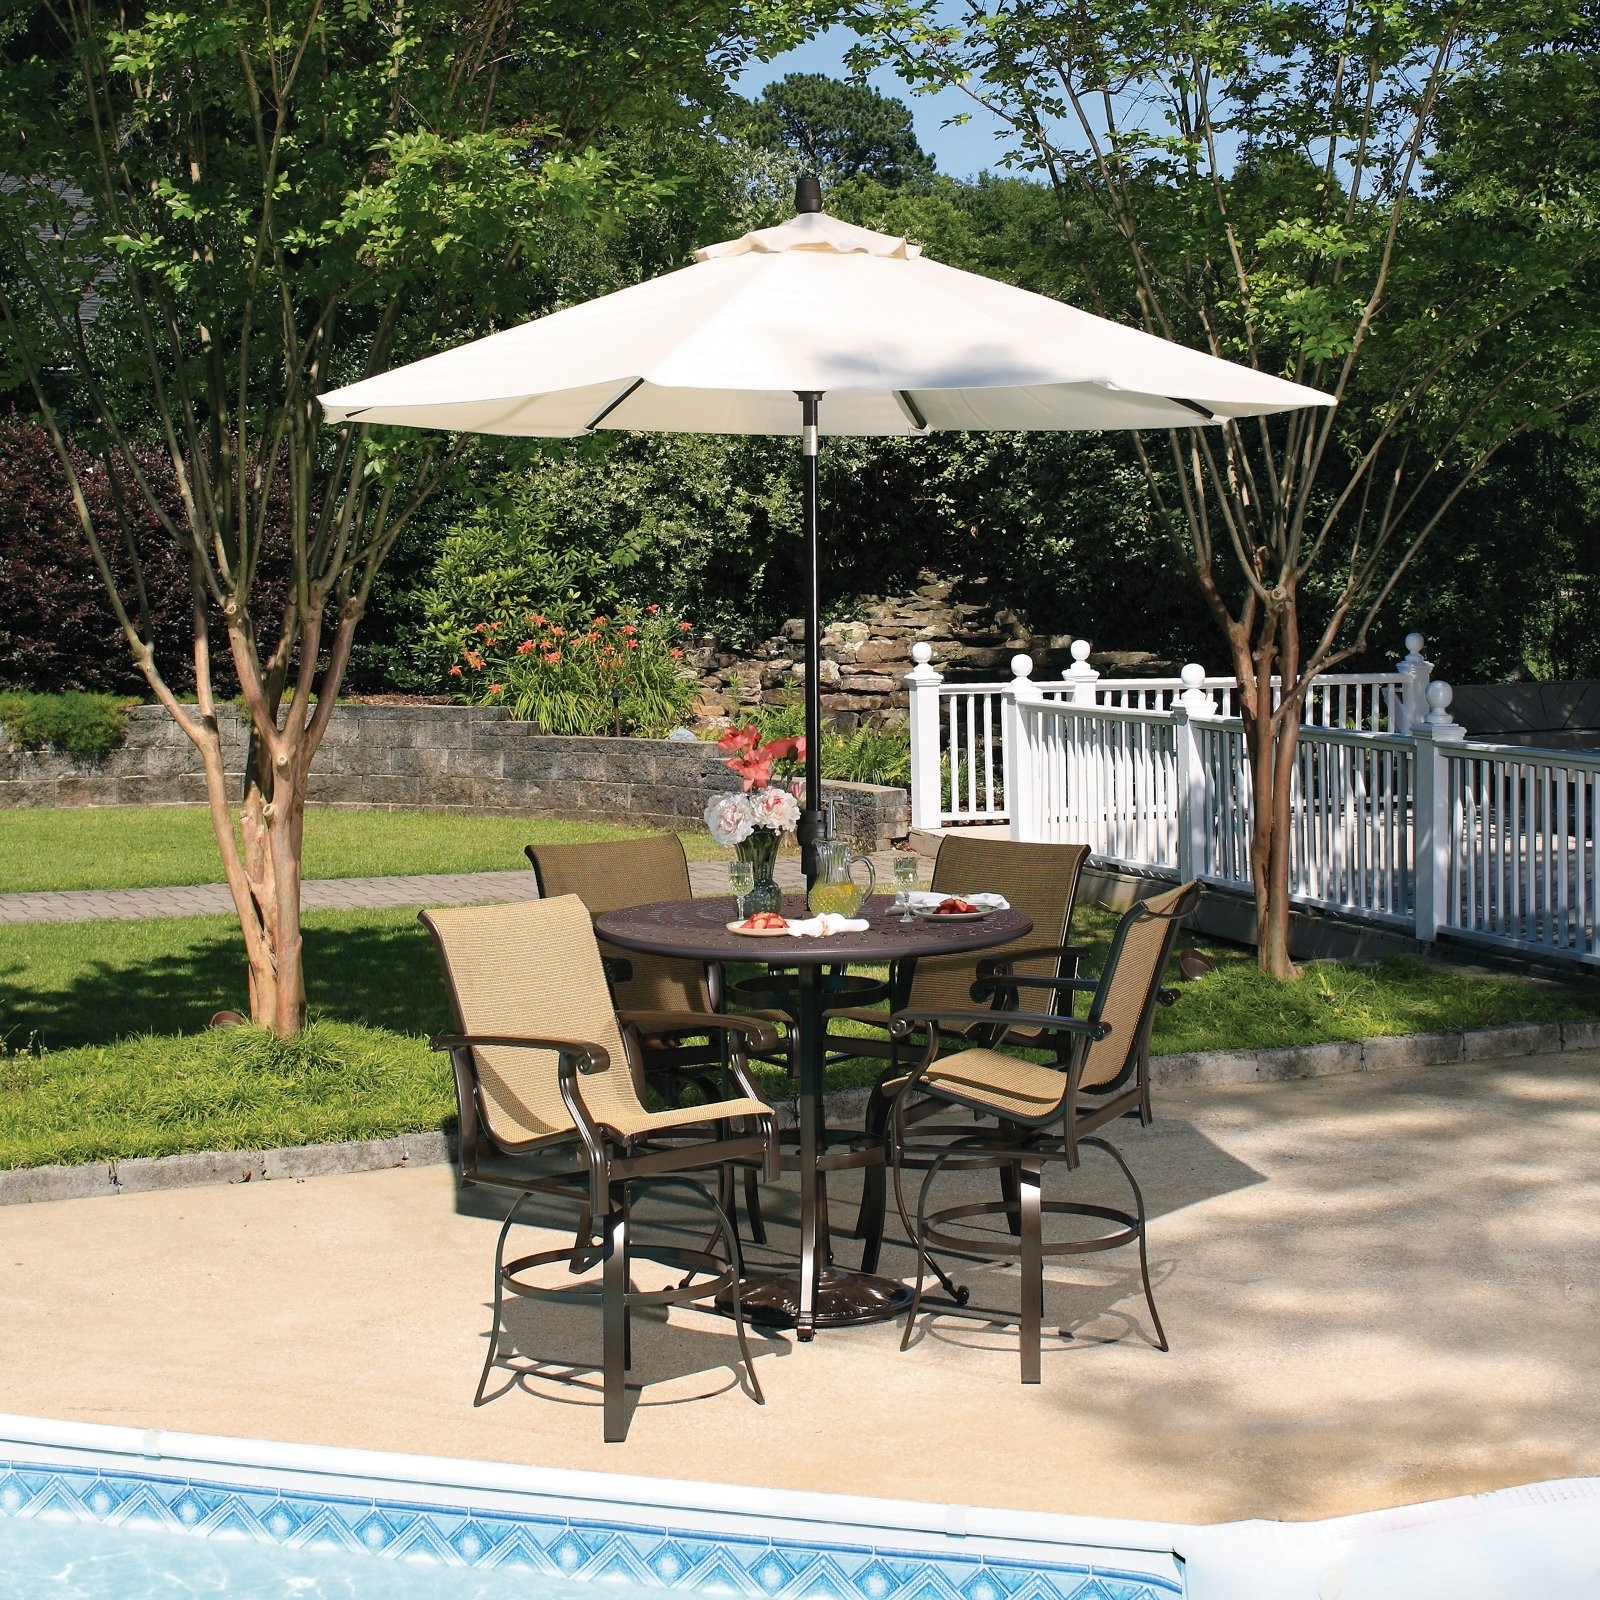 Widely Used Patio Umbrellas Costco Fresh Outdoor Furniture Covers Costco From 14 Throughout Costco Patio Umbrellas (View 20 of 20)